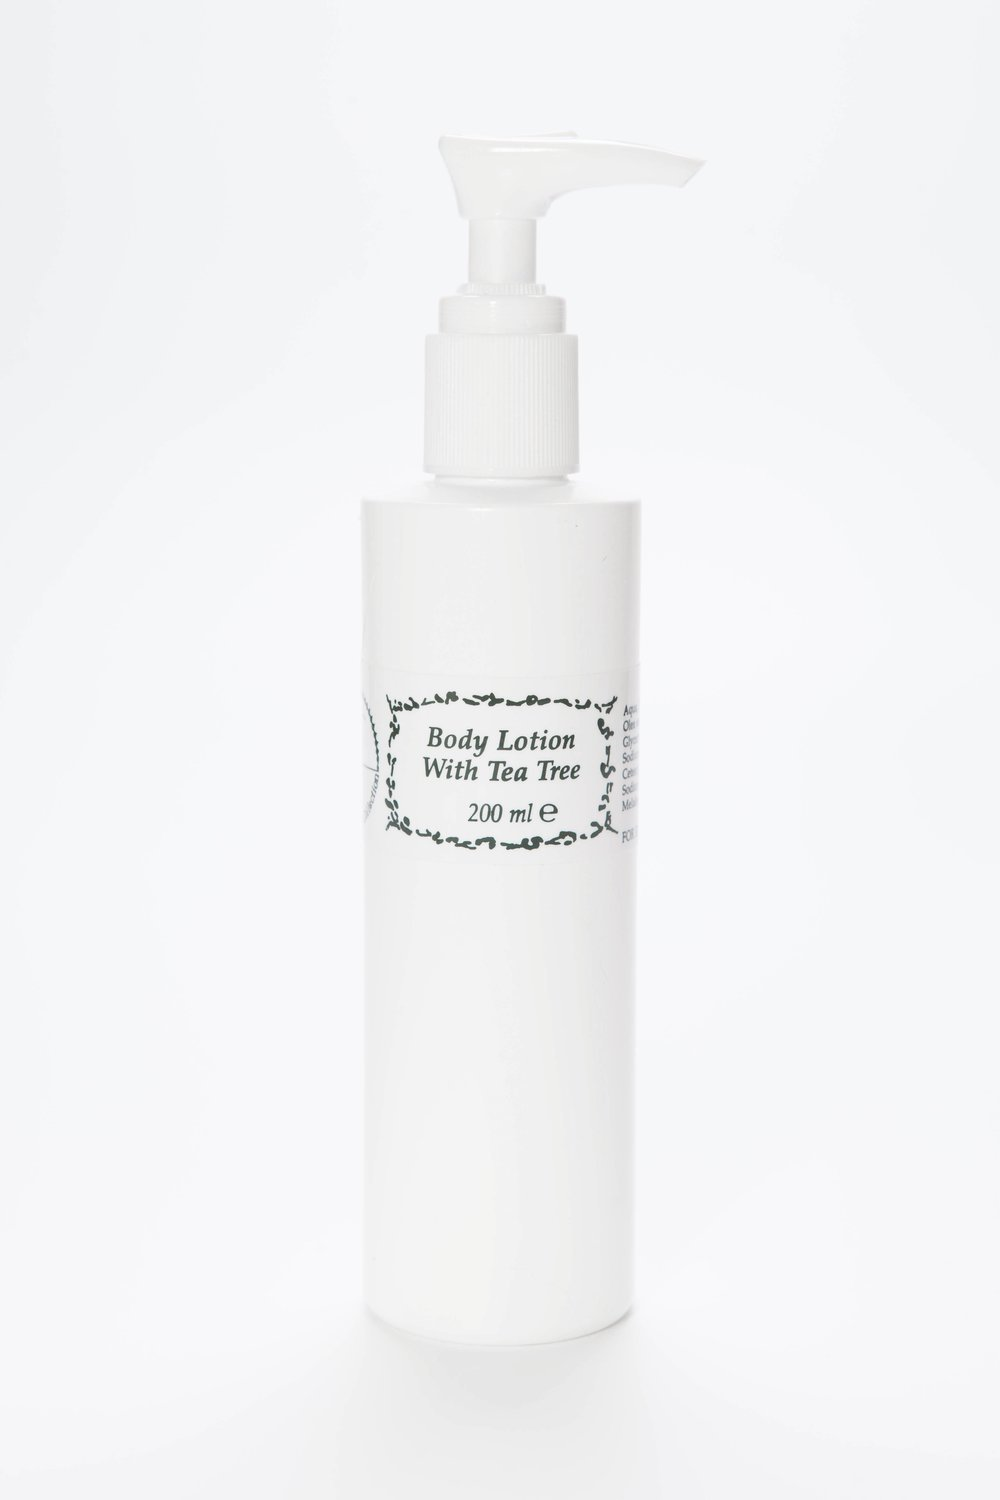 Body Lotion with Tea Tree 200ml